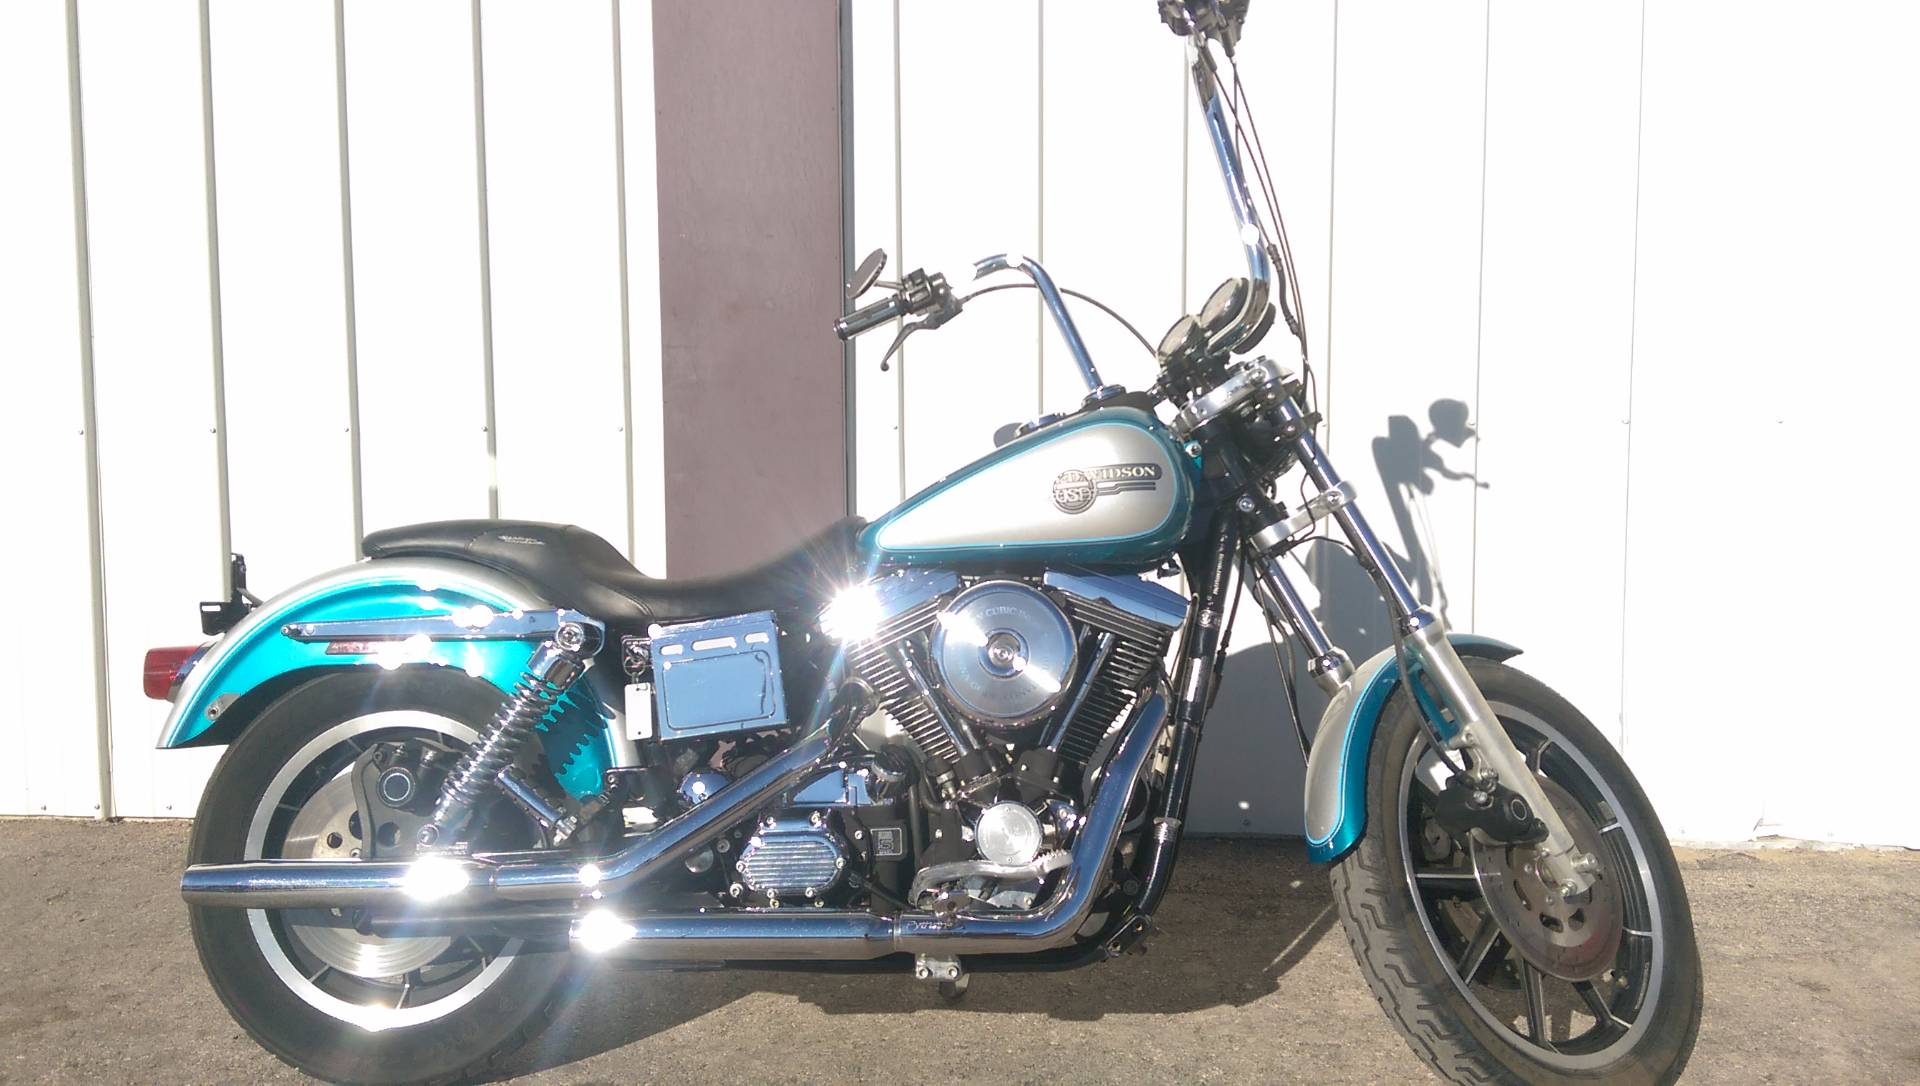 1994 harley-davidson fxds dyna convertible motorcycles rapid city